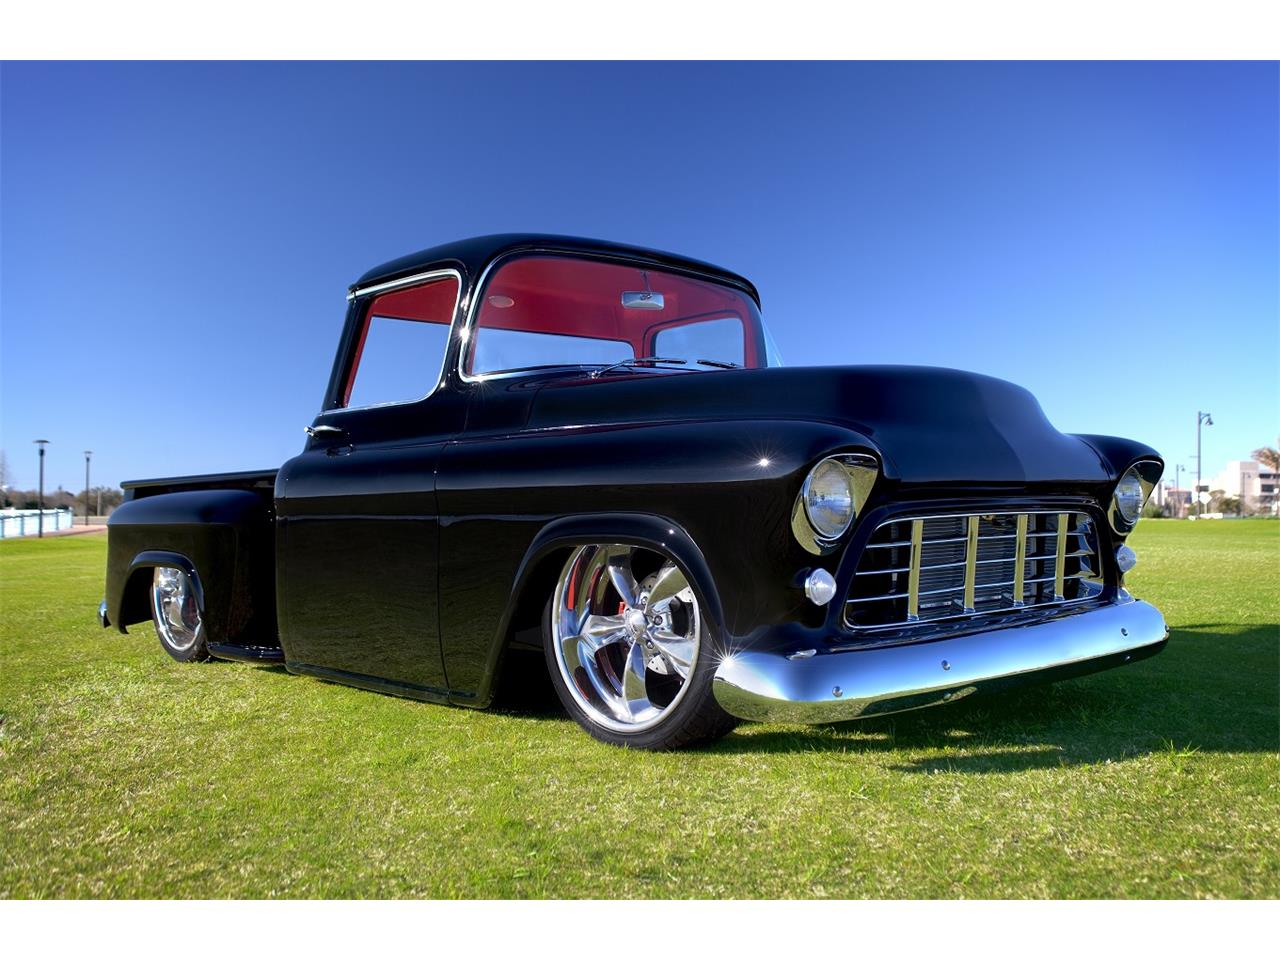 1956 chevy pickup wiring diagram 56 chevy truck for sale foto truck and descripstions  56 chevy truck for sale foto truck